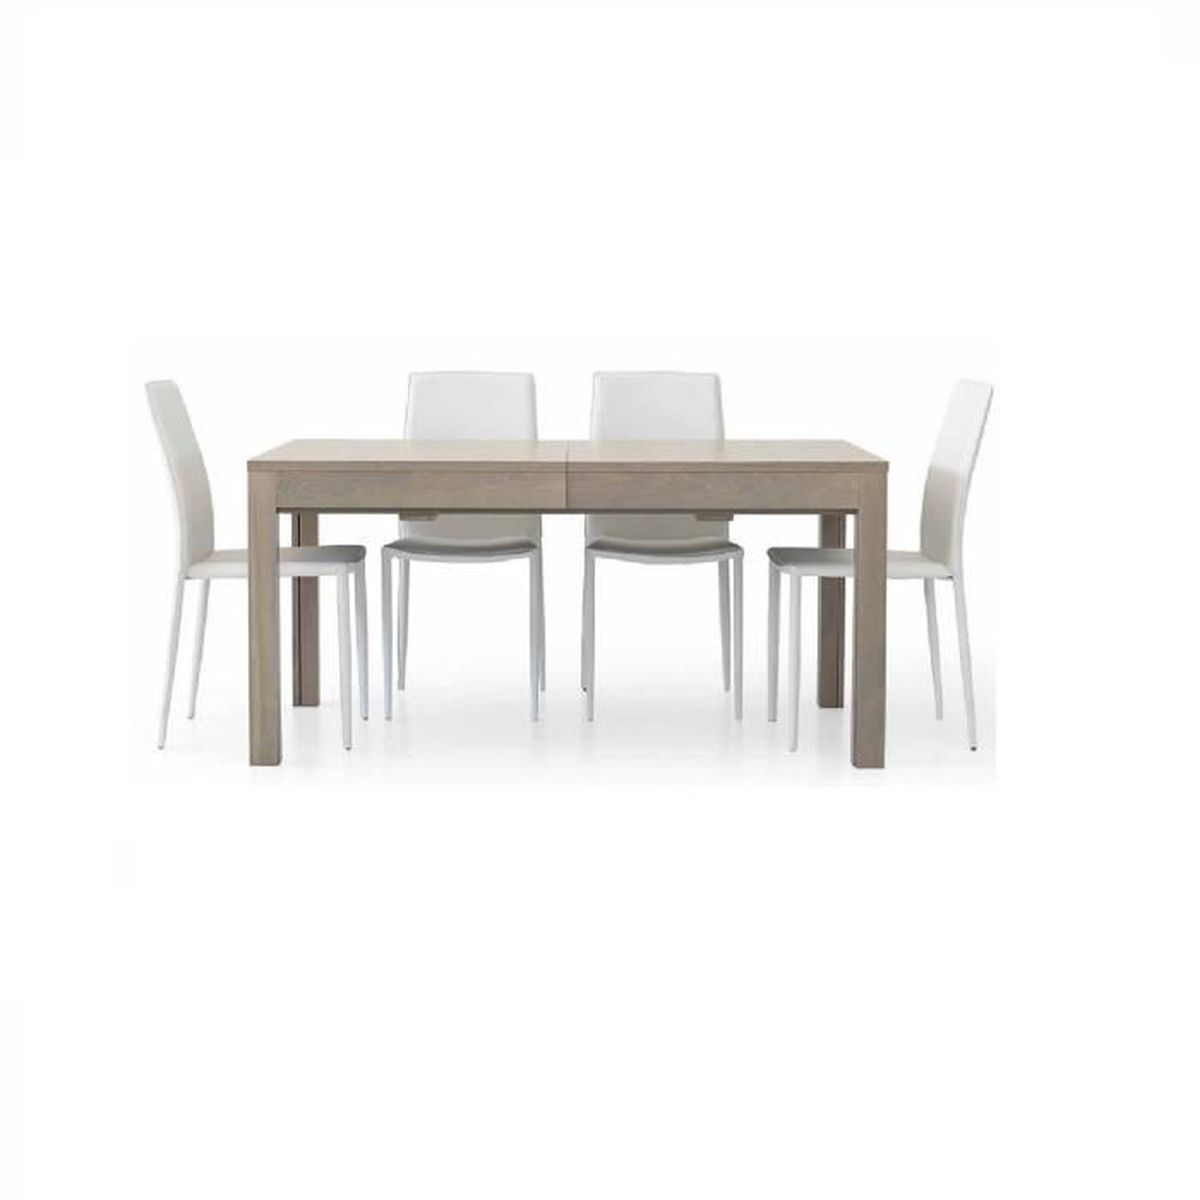 Table en ch ne gris avec 4 rallonges de 43 cm style for Table 160 cm avec rallonge